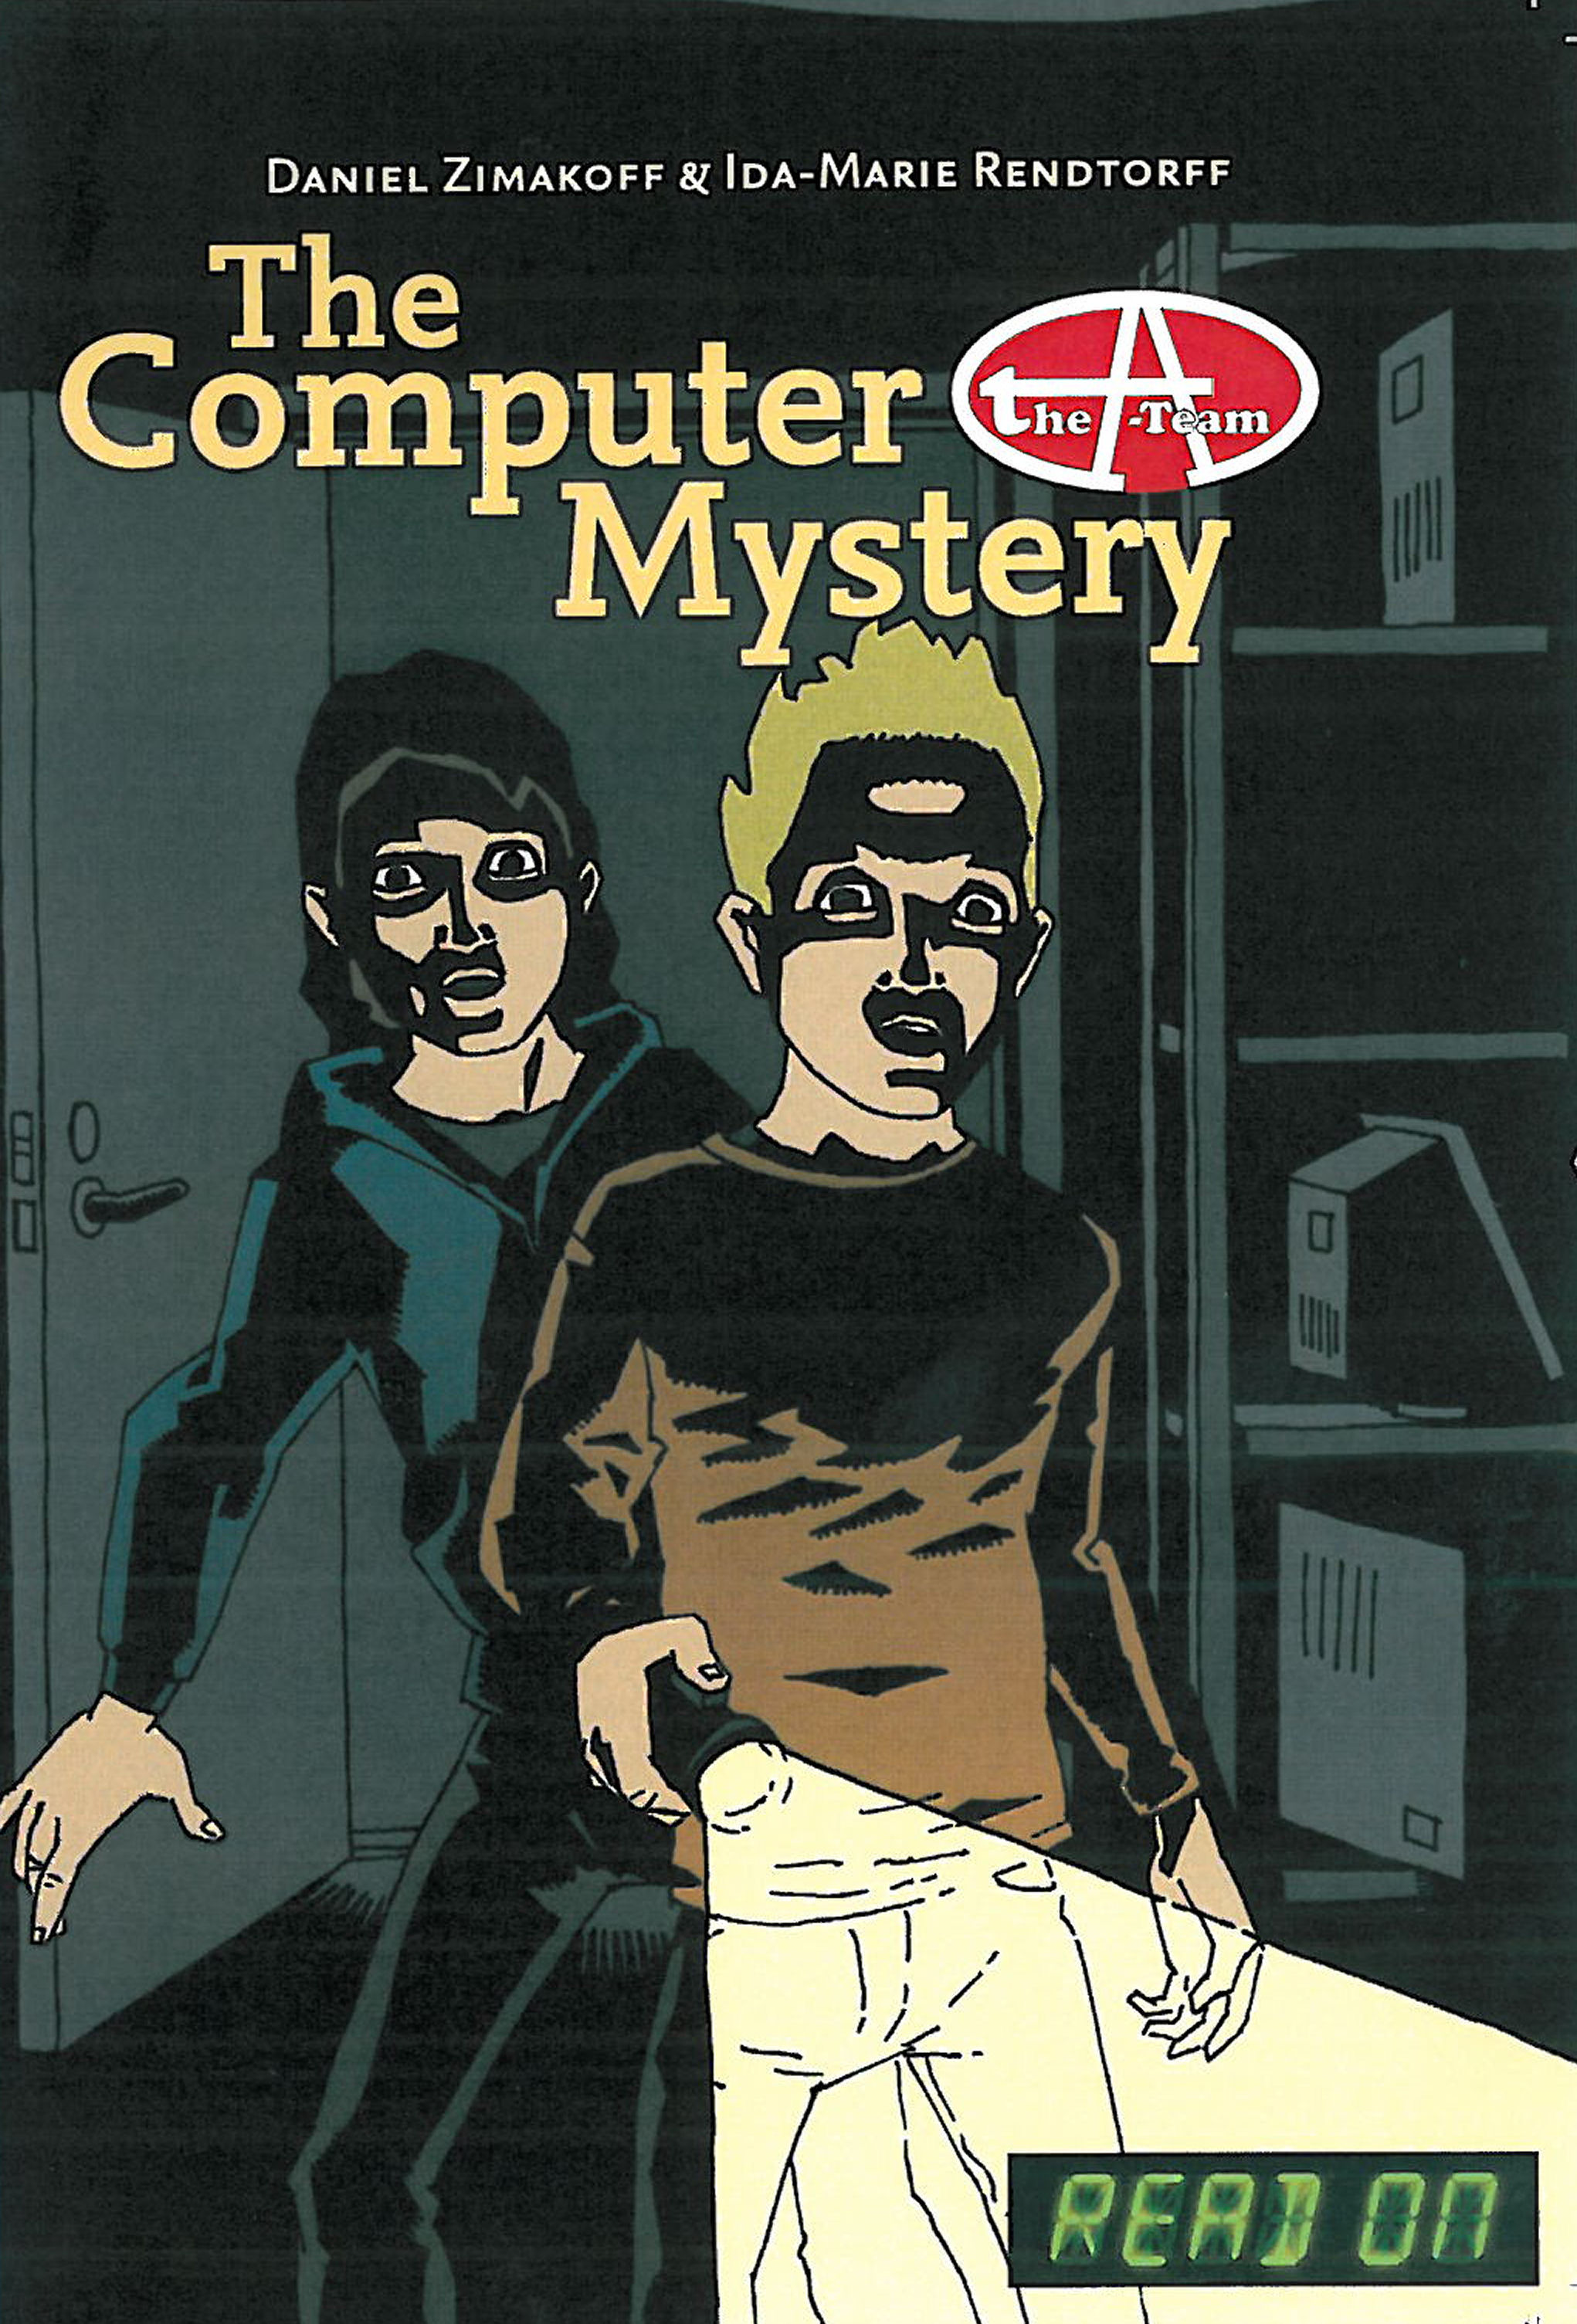 The A-Team: The Computer Mystery - 1 - Read ON series